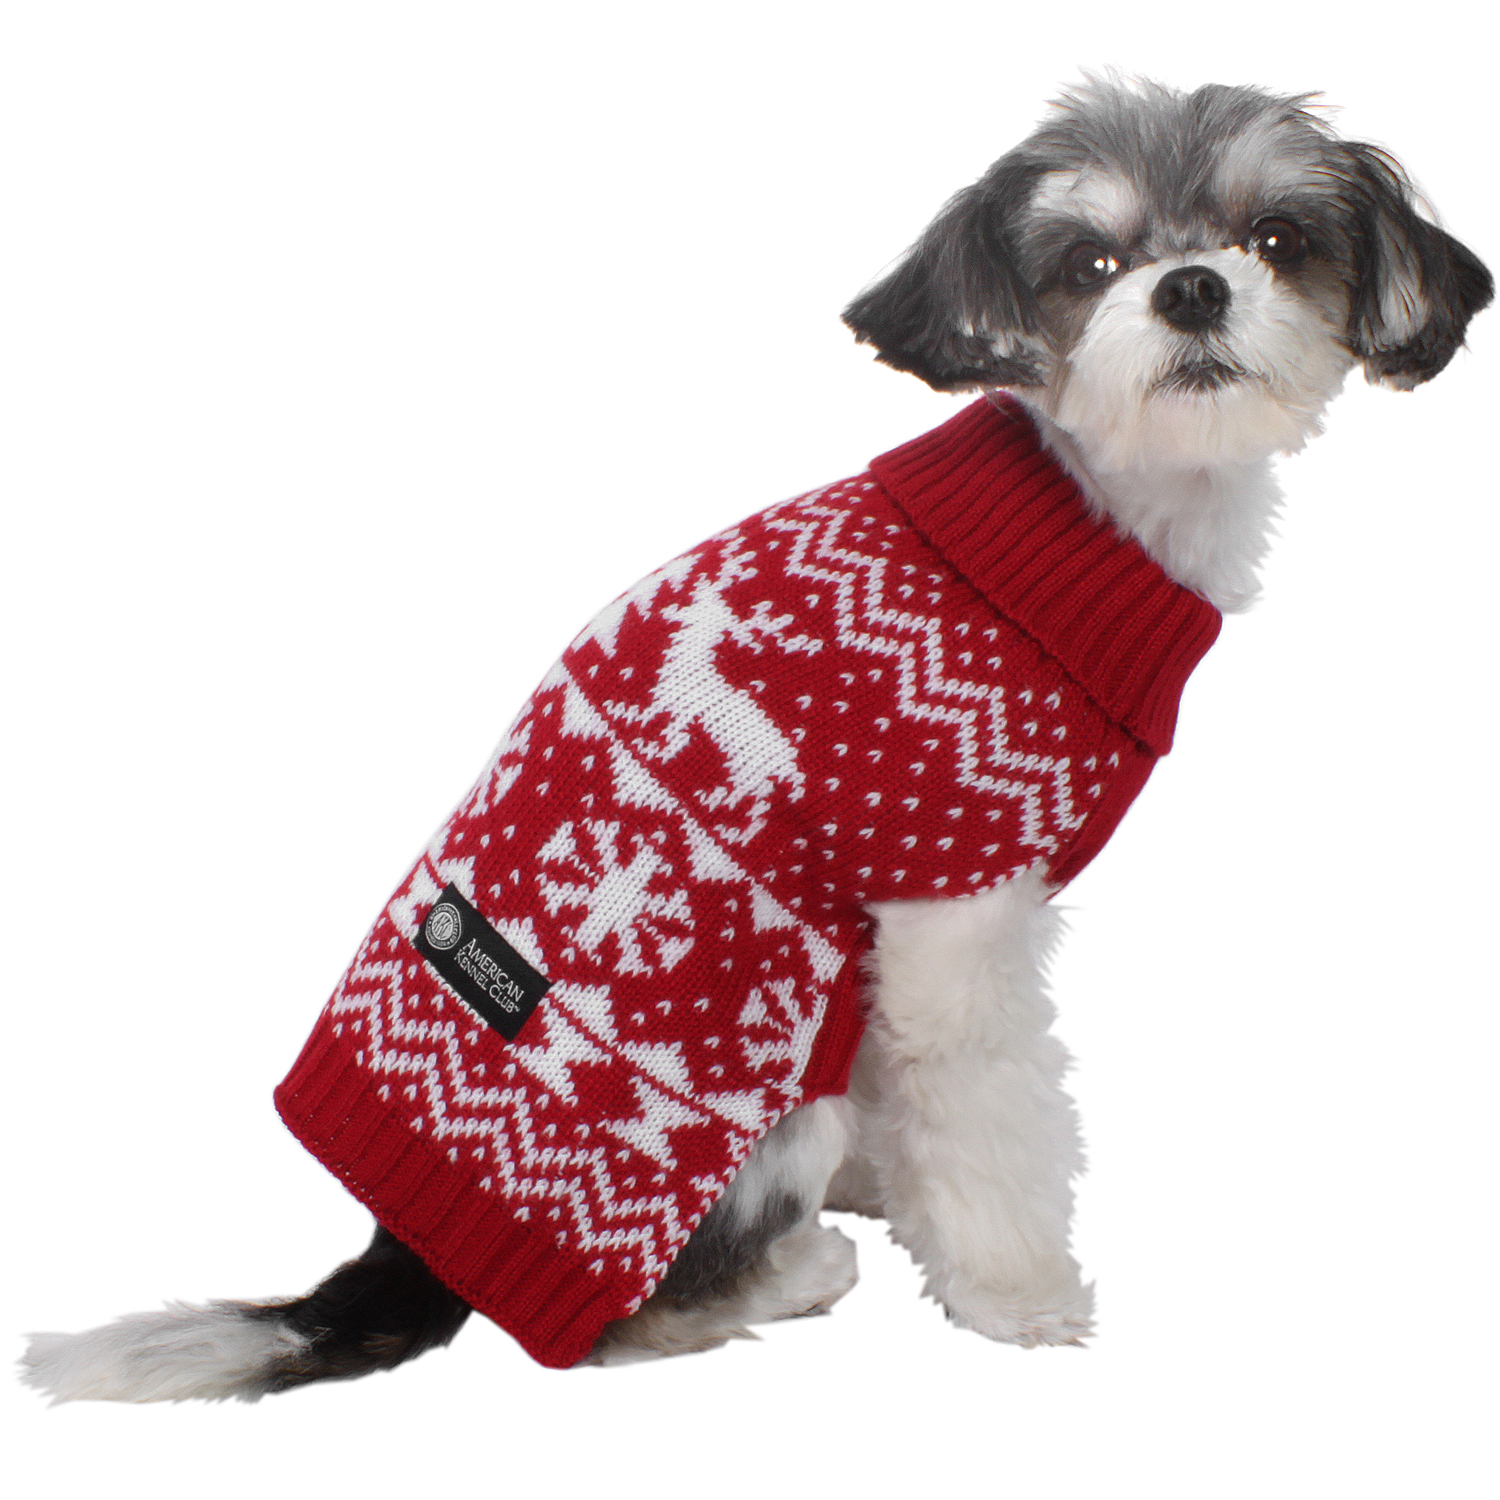 AKC Holiday Sweater